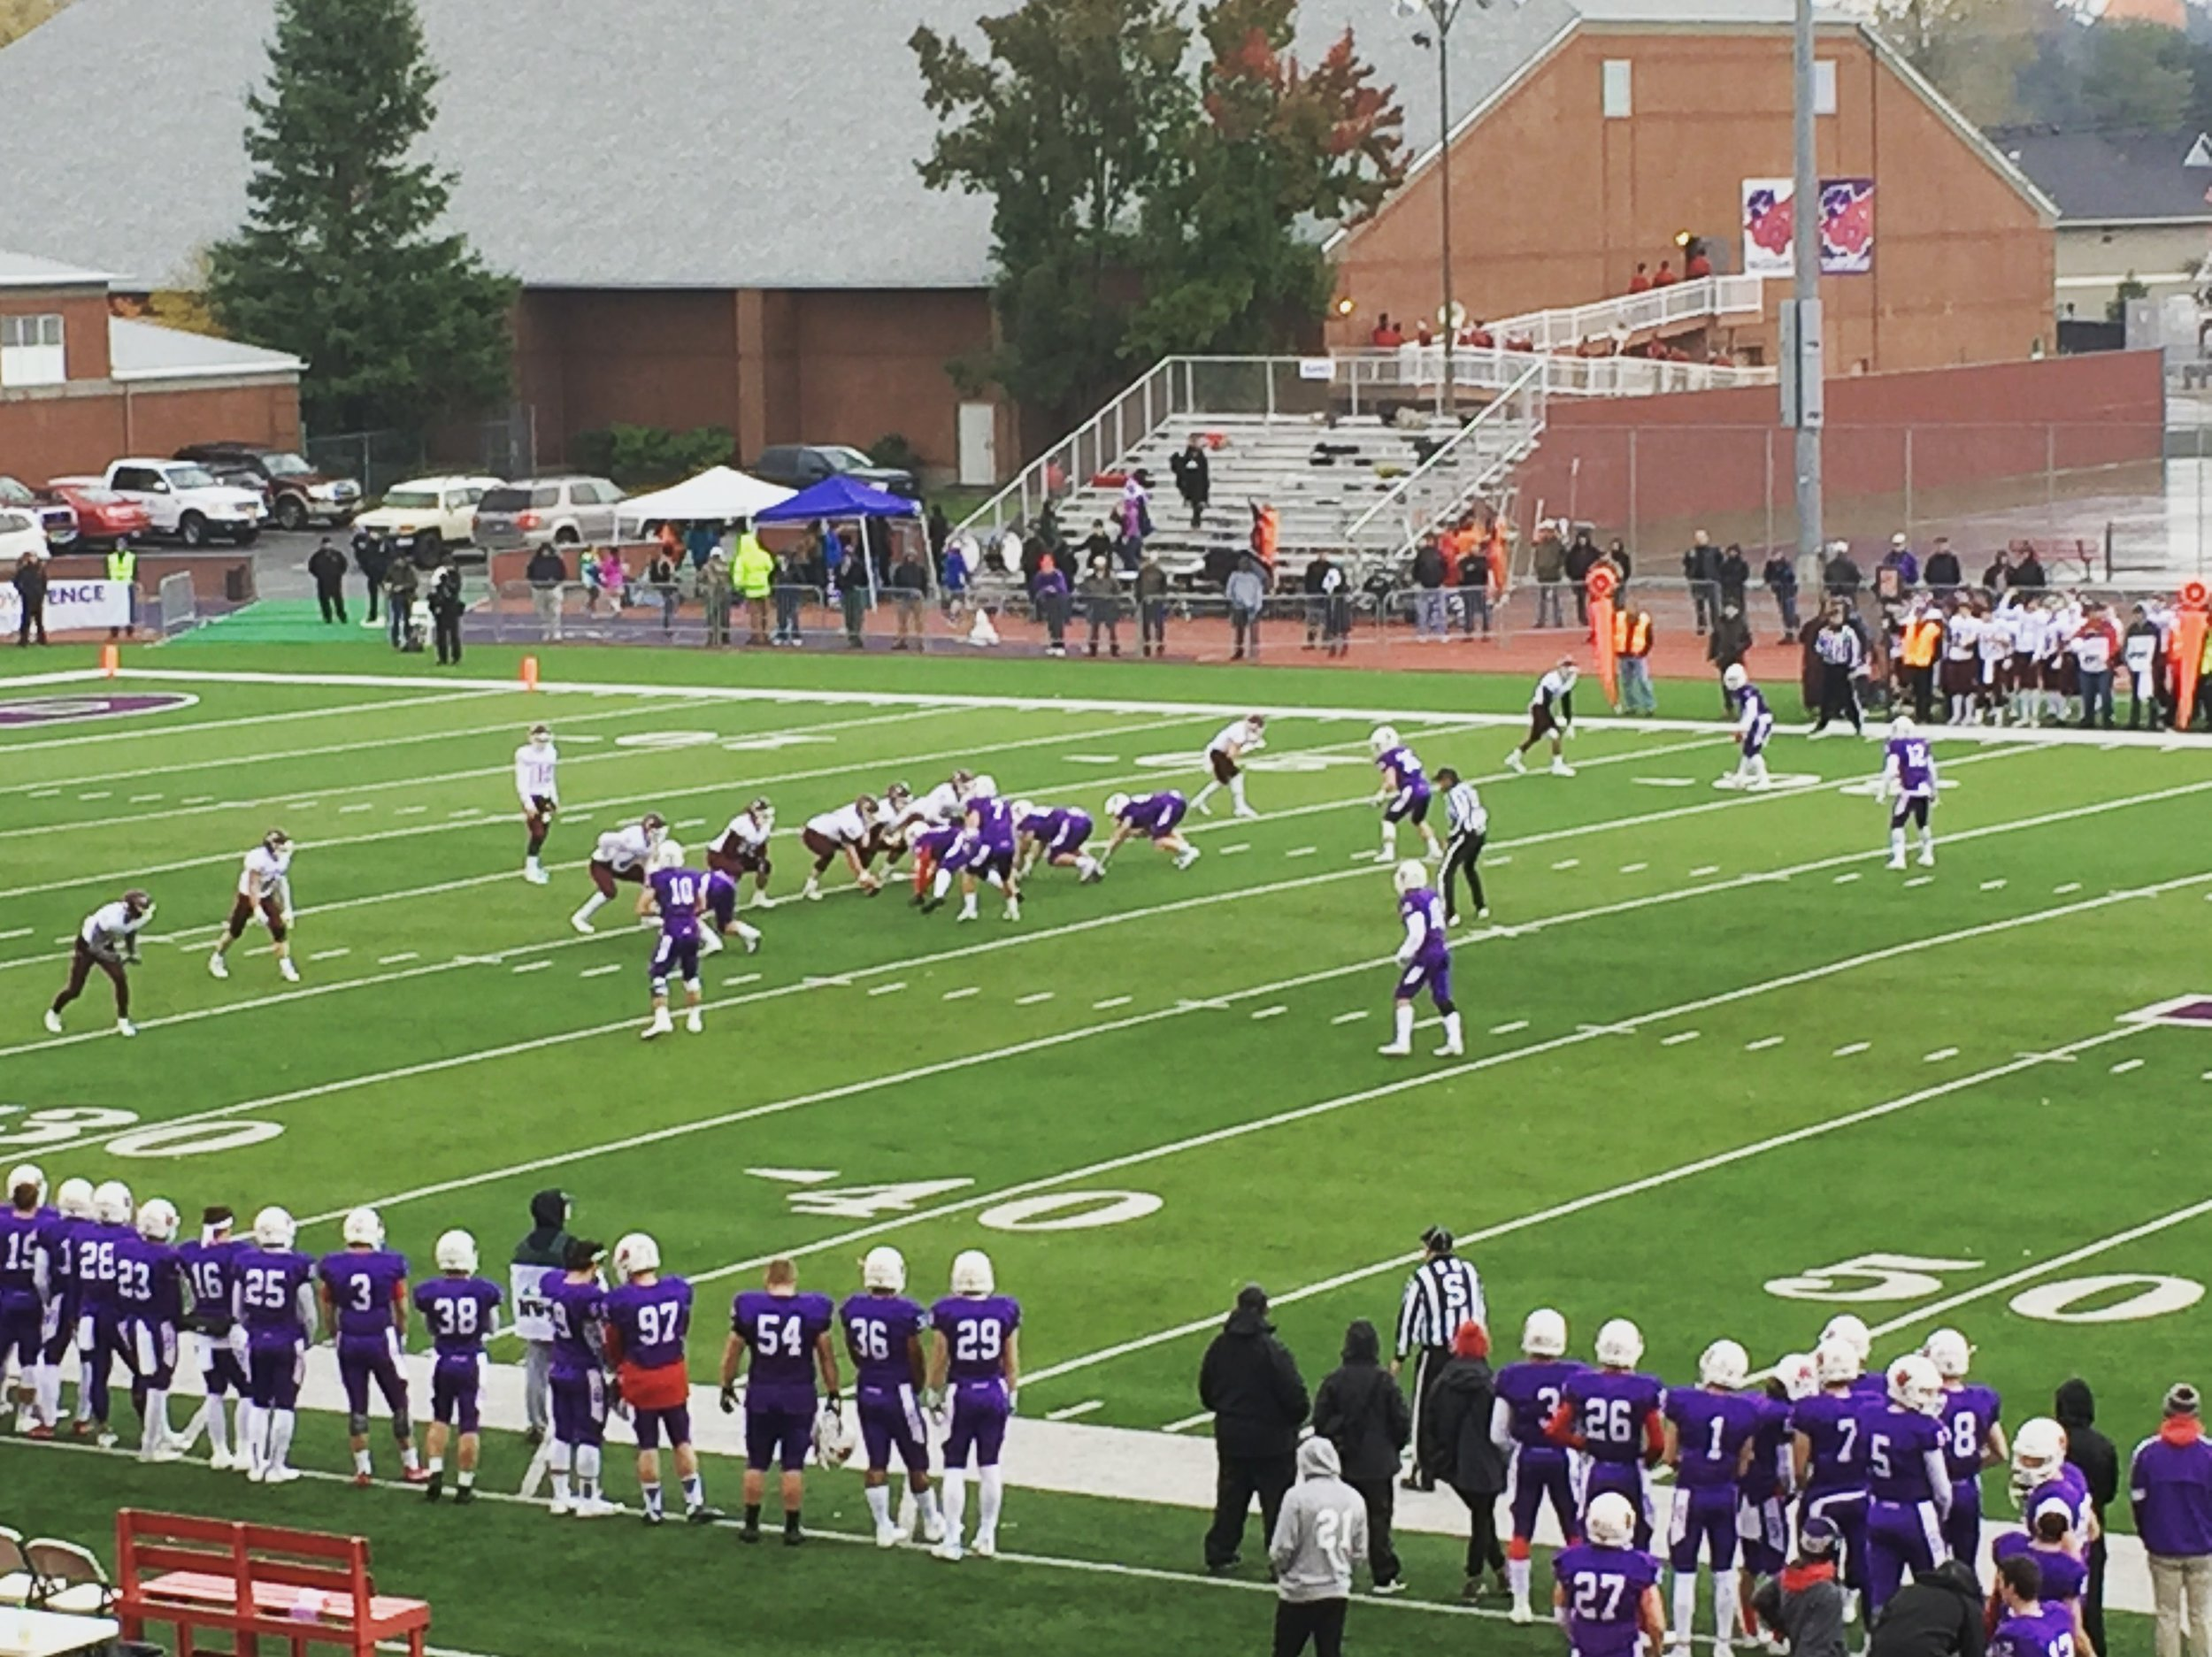 Linfield College - McMinnville, Oregon